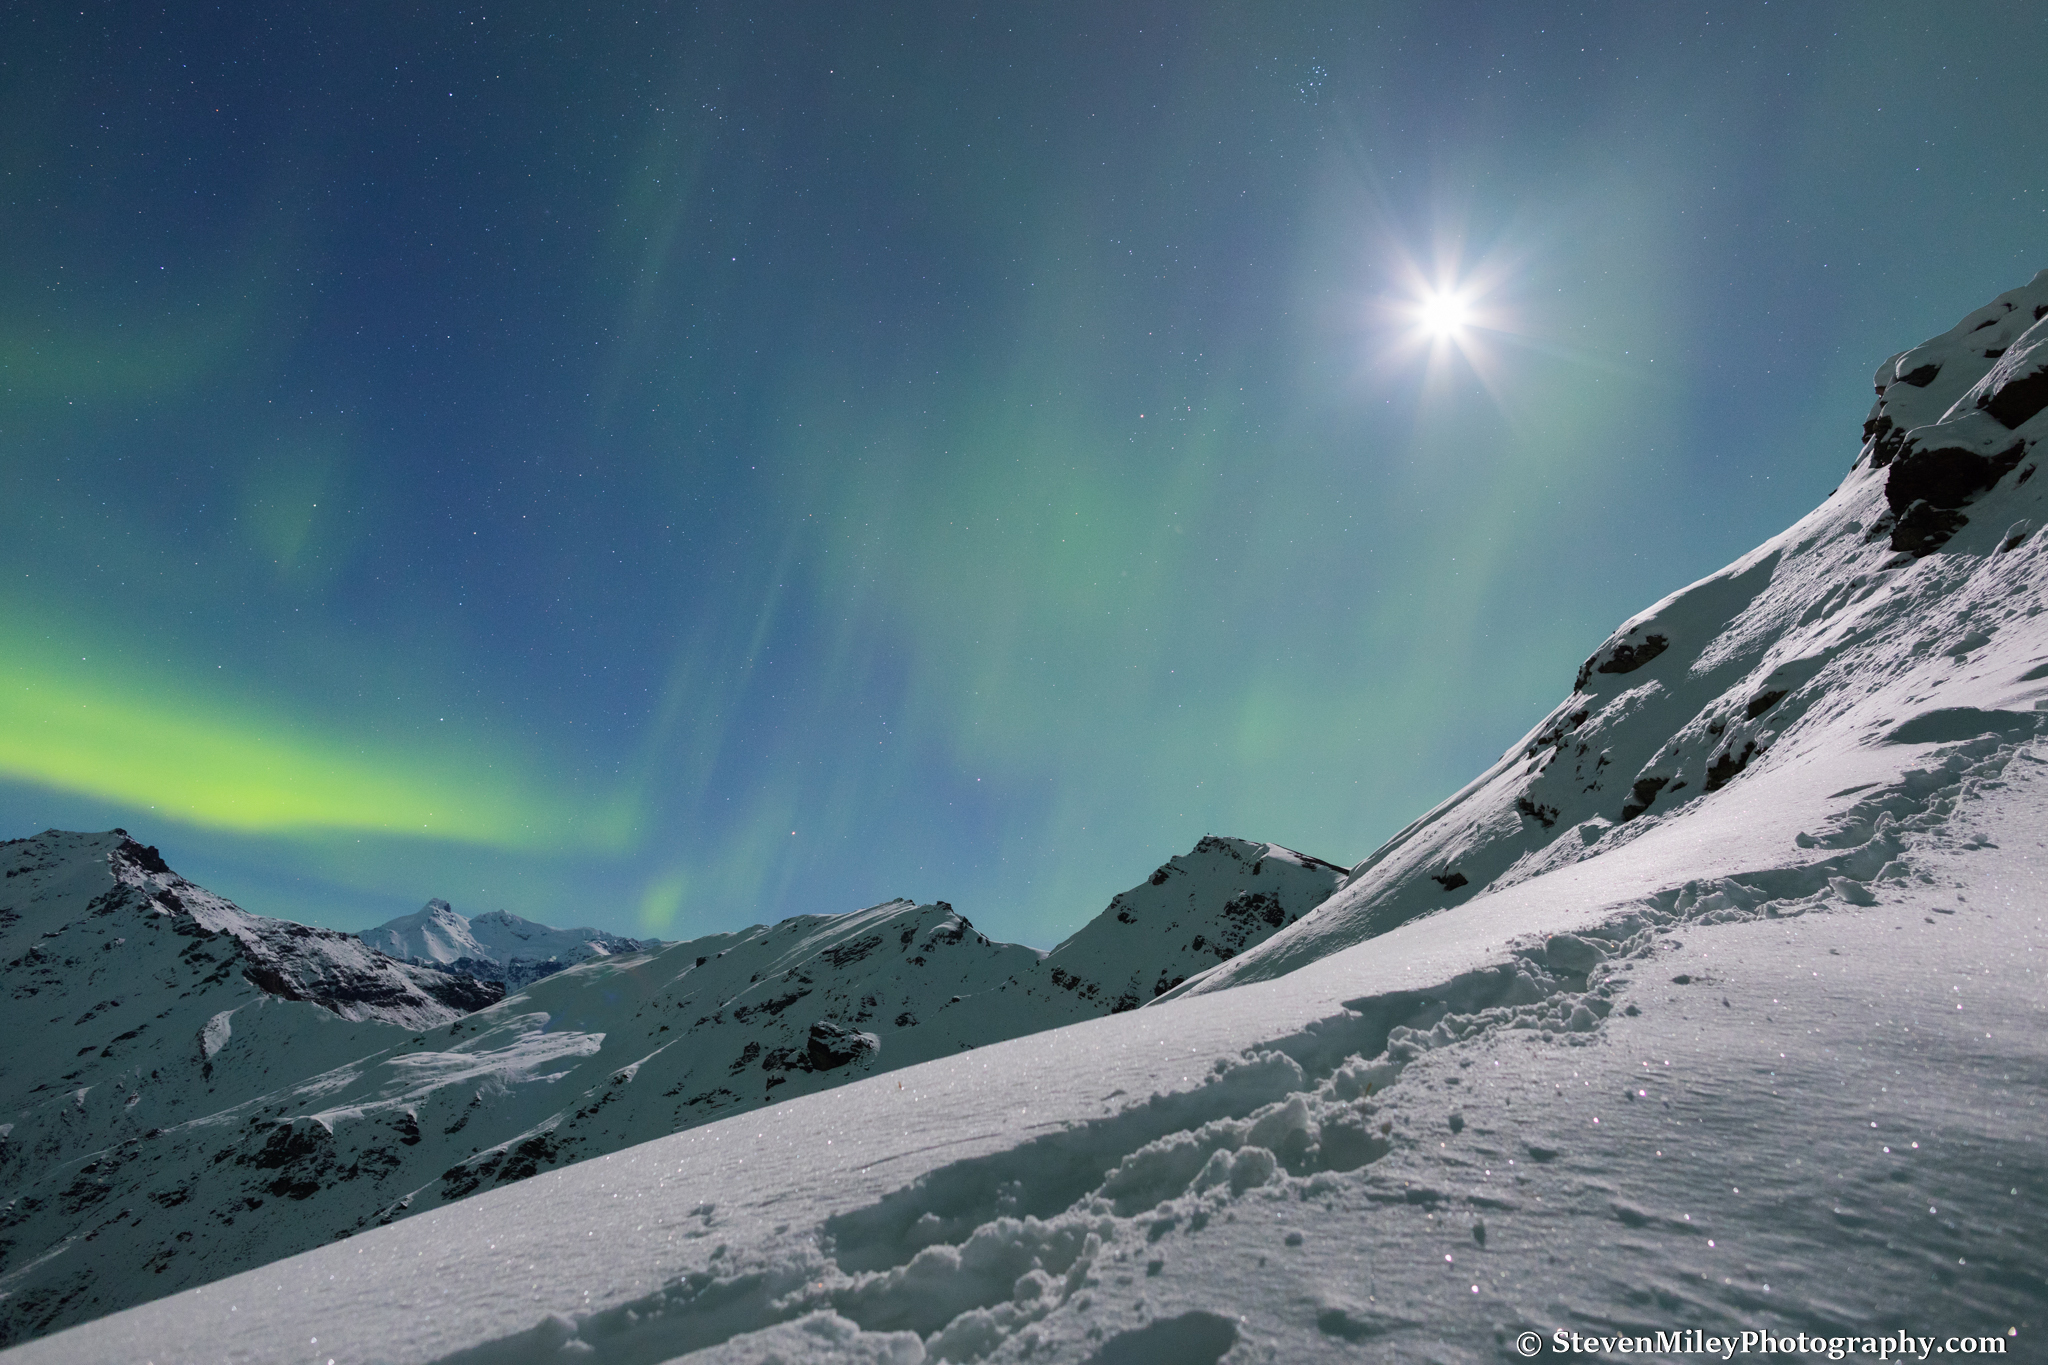 Aurora and the moon in the sky with our tracks on the spur in the foreground. Grant is visible as a small black dot on the rightmost false summit.